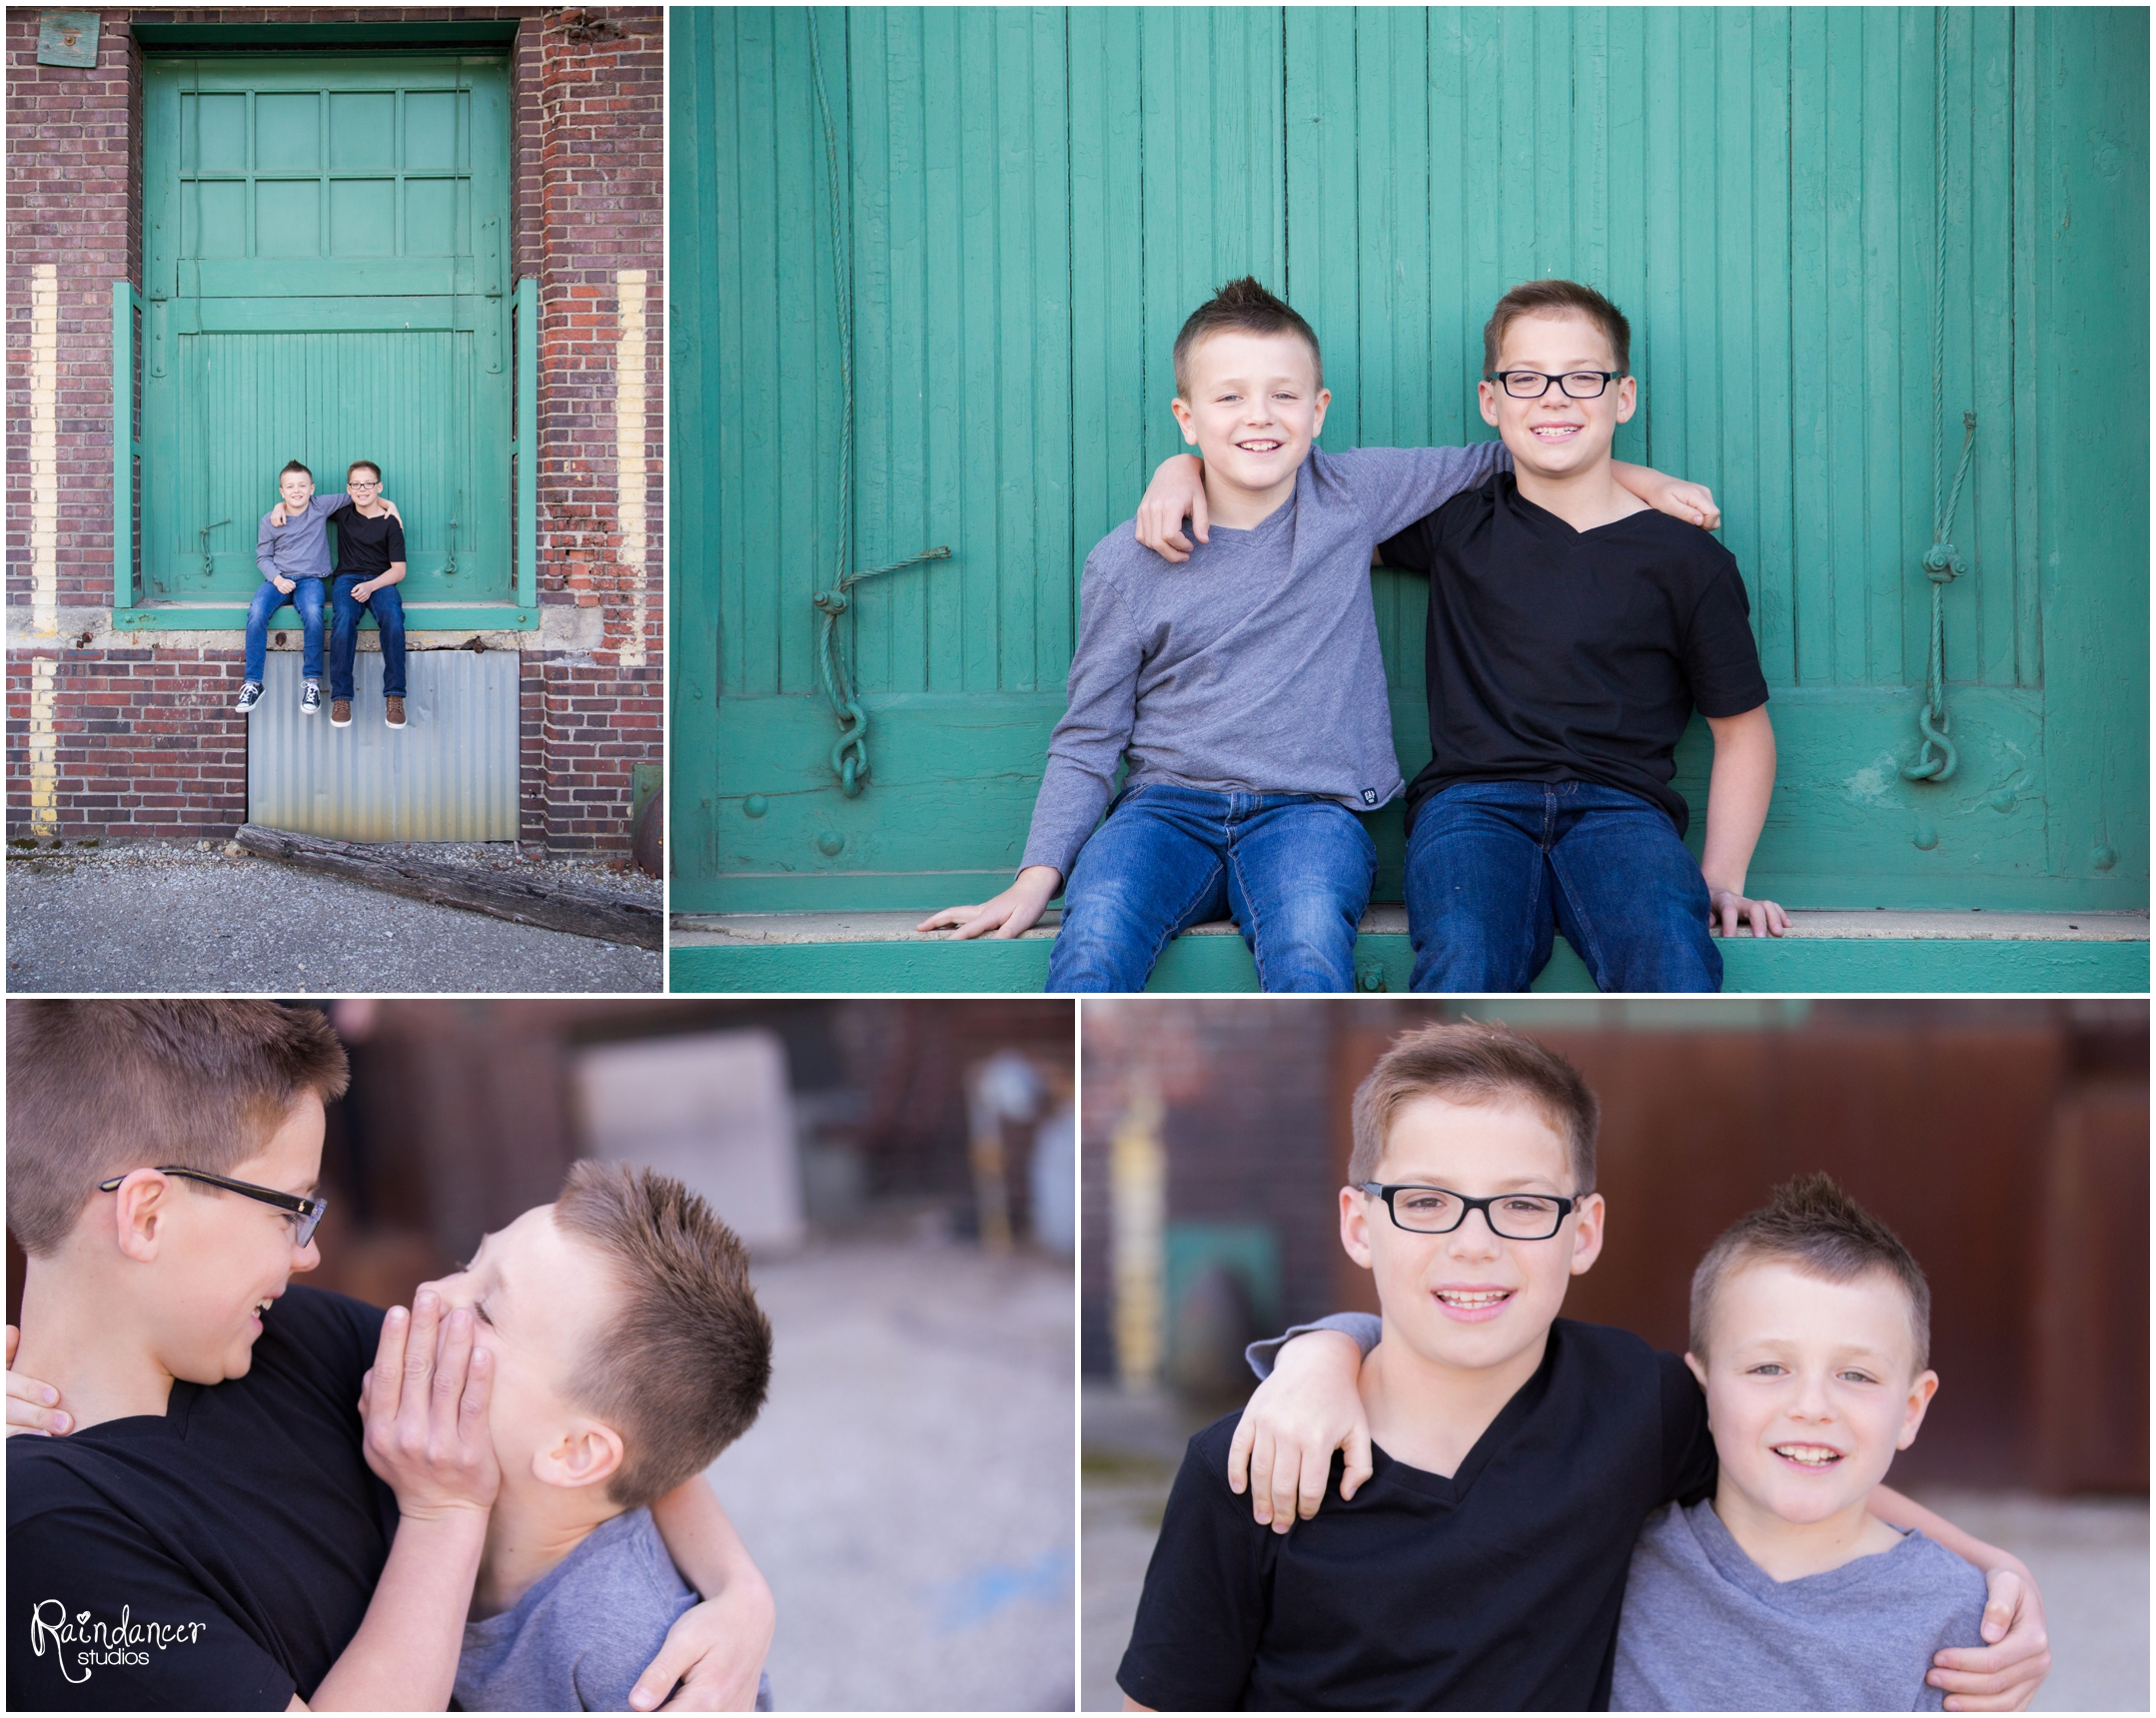 Indianapolis family photographer, Indianapolis family photography, Indy family photographer, Indy family photography, Indy children photographer, Indianapolis children photographer, Indianapolis lifestyle photographer